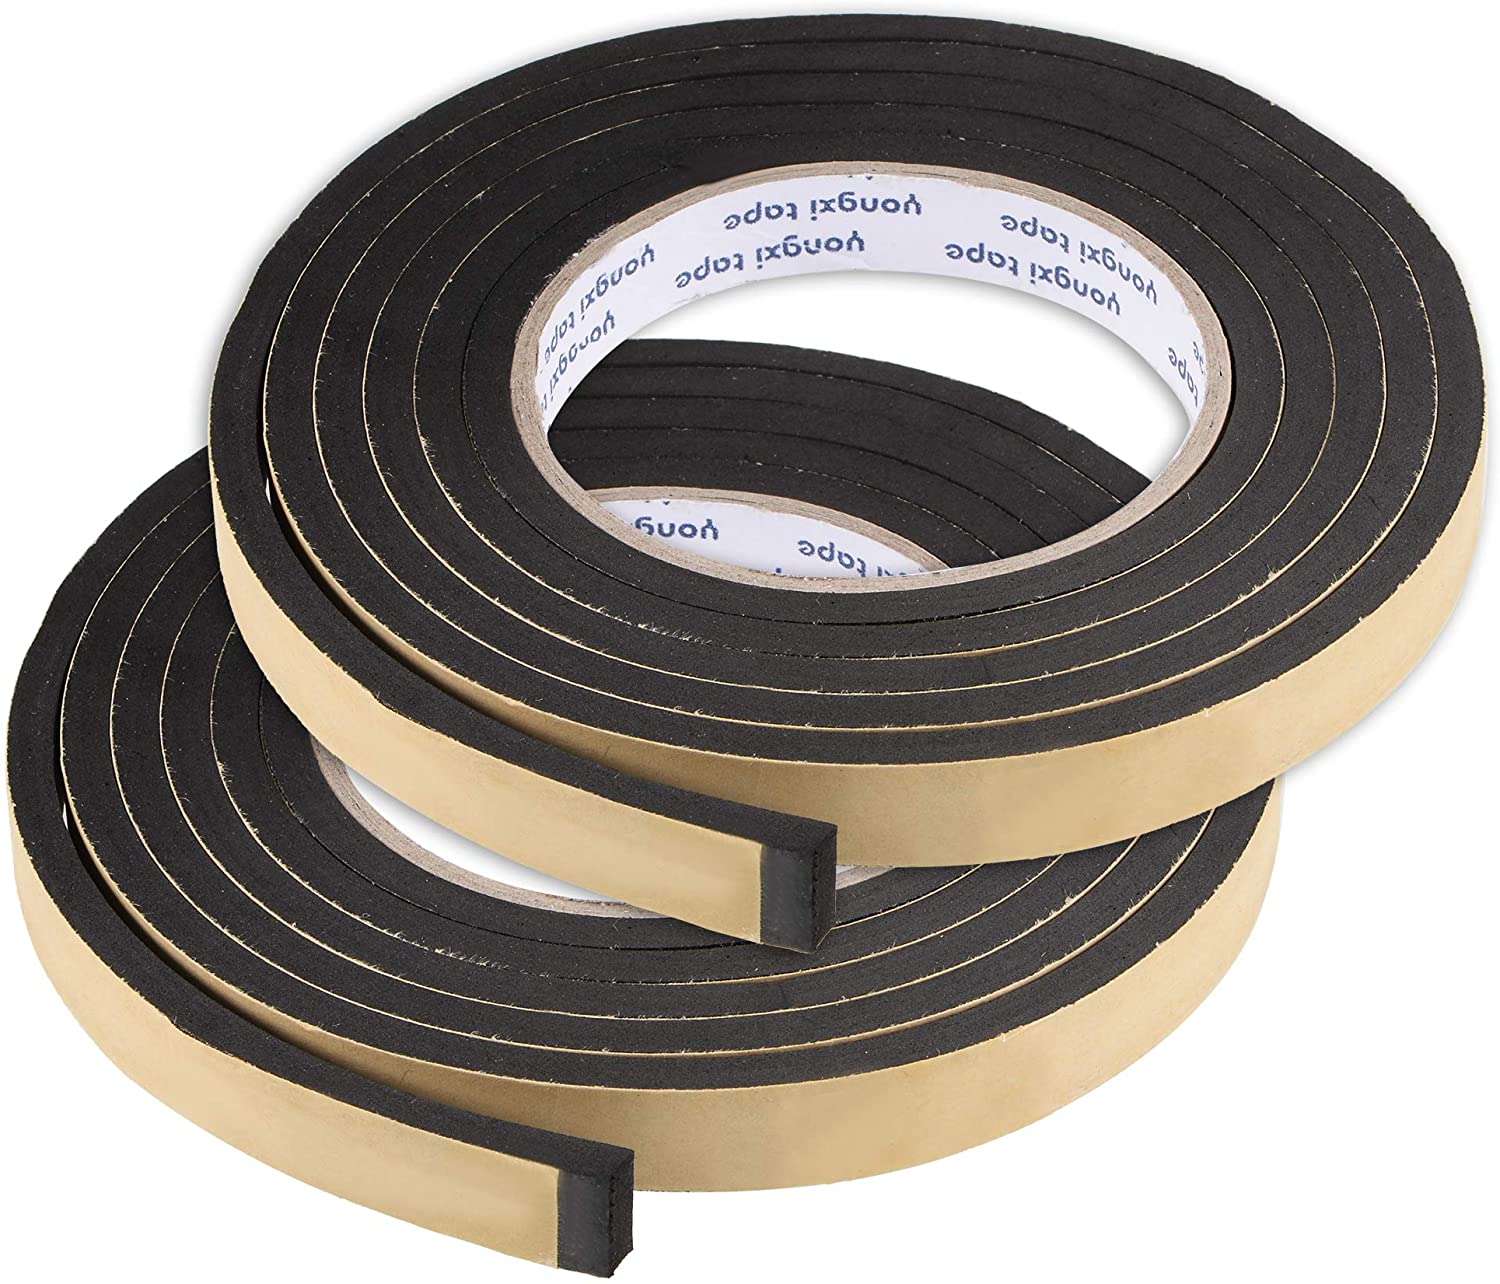 uxcell Sealing Foam Tape 15mm Wide 5mm Thick 2m/6.56ft Long, EVA Self Adhesive Weather Strip for Window Door Insulation, Pack of 2